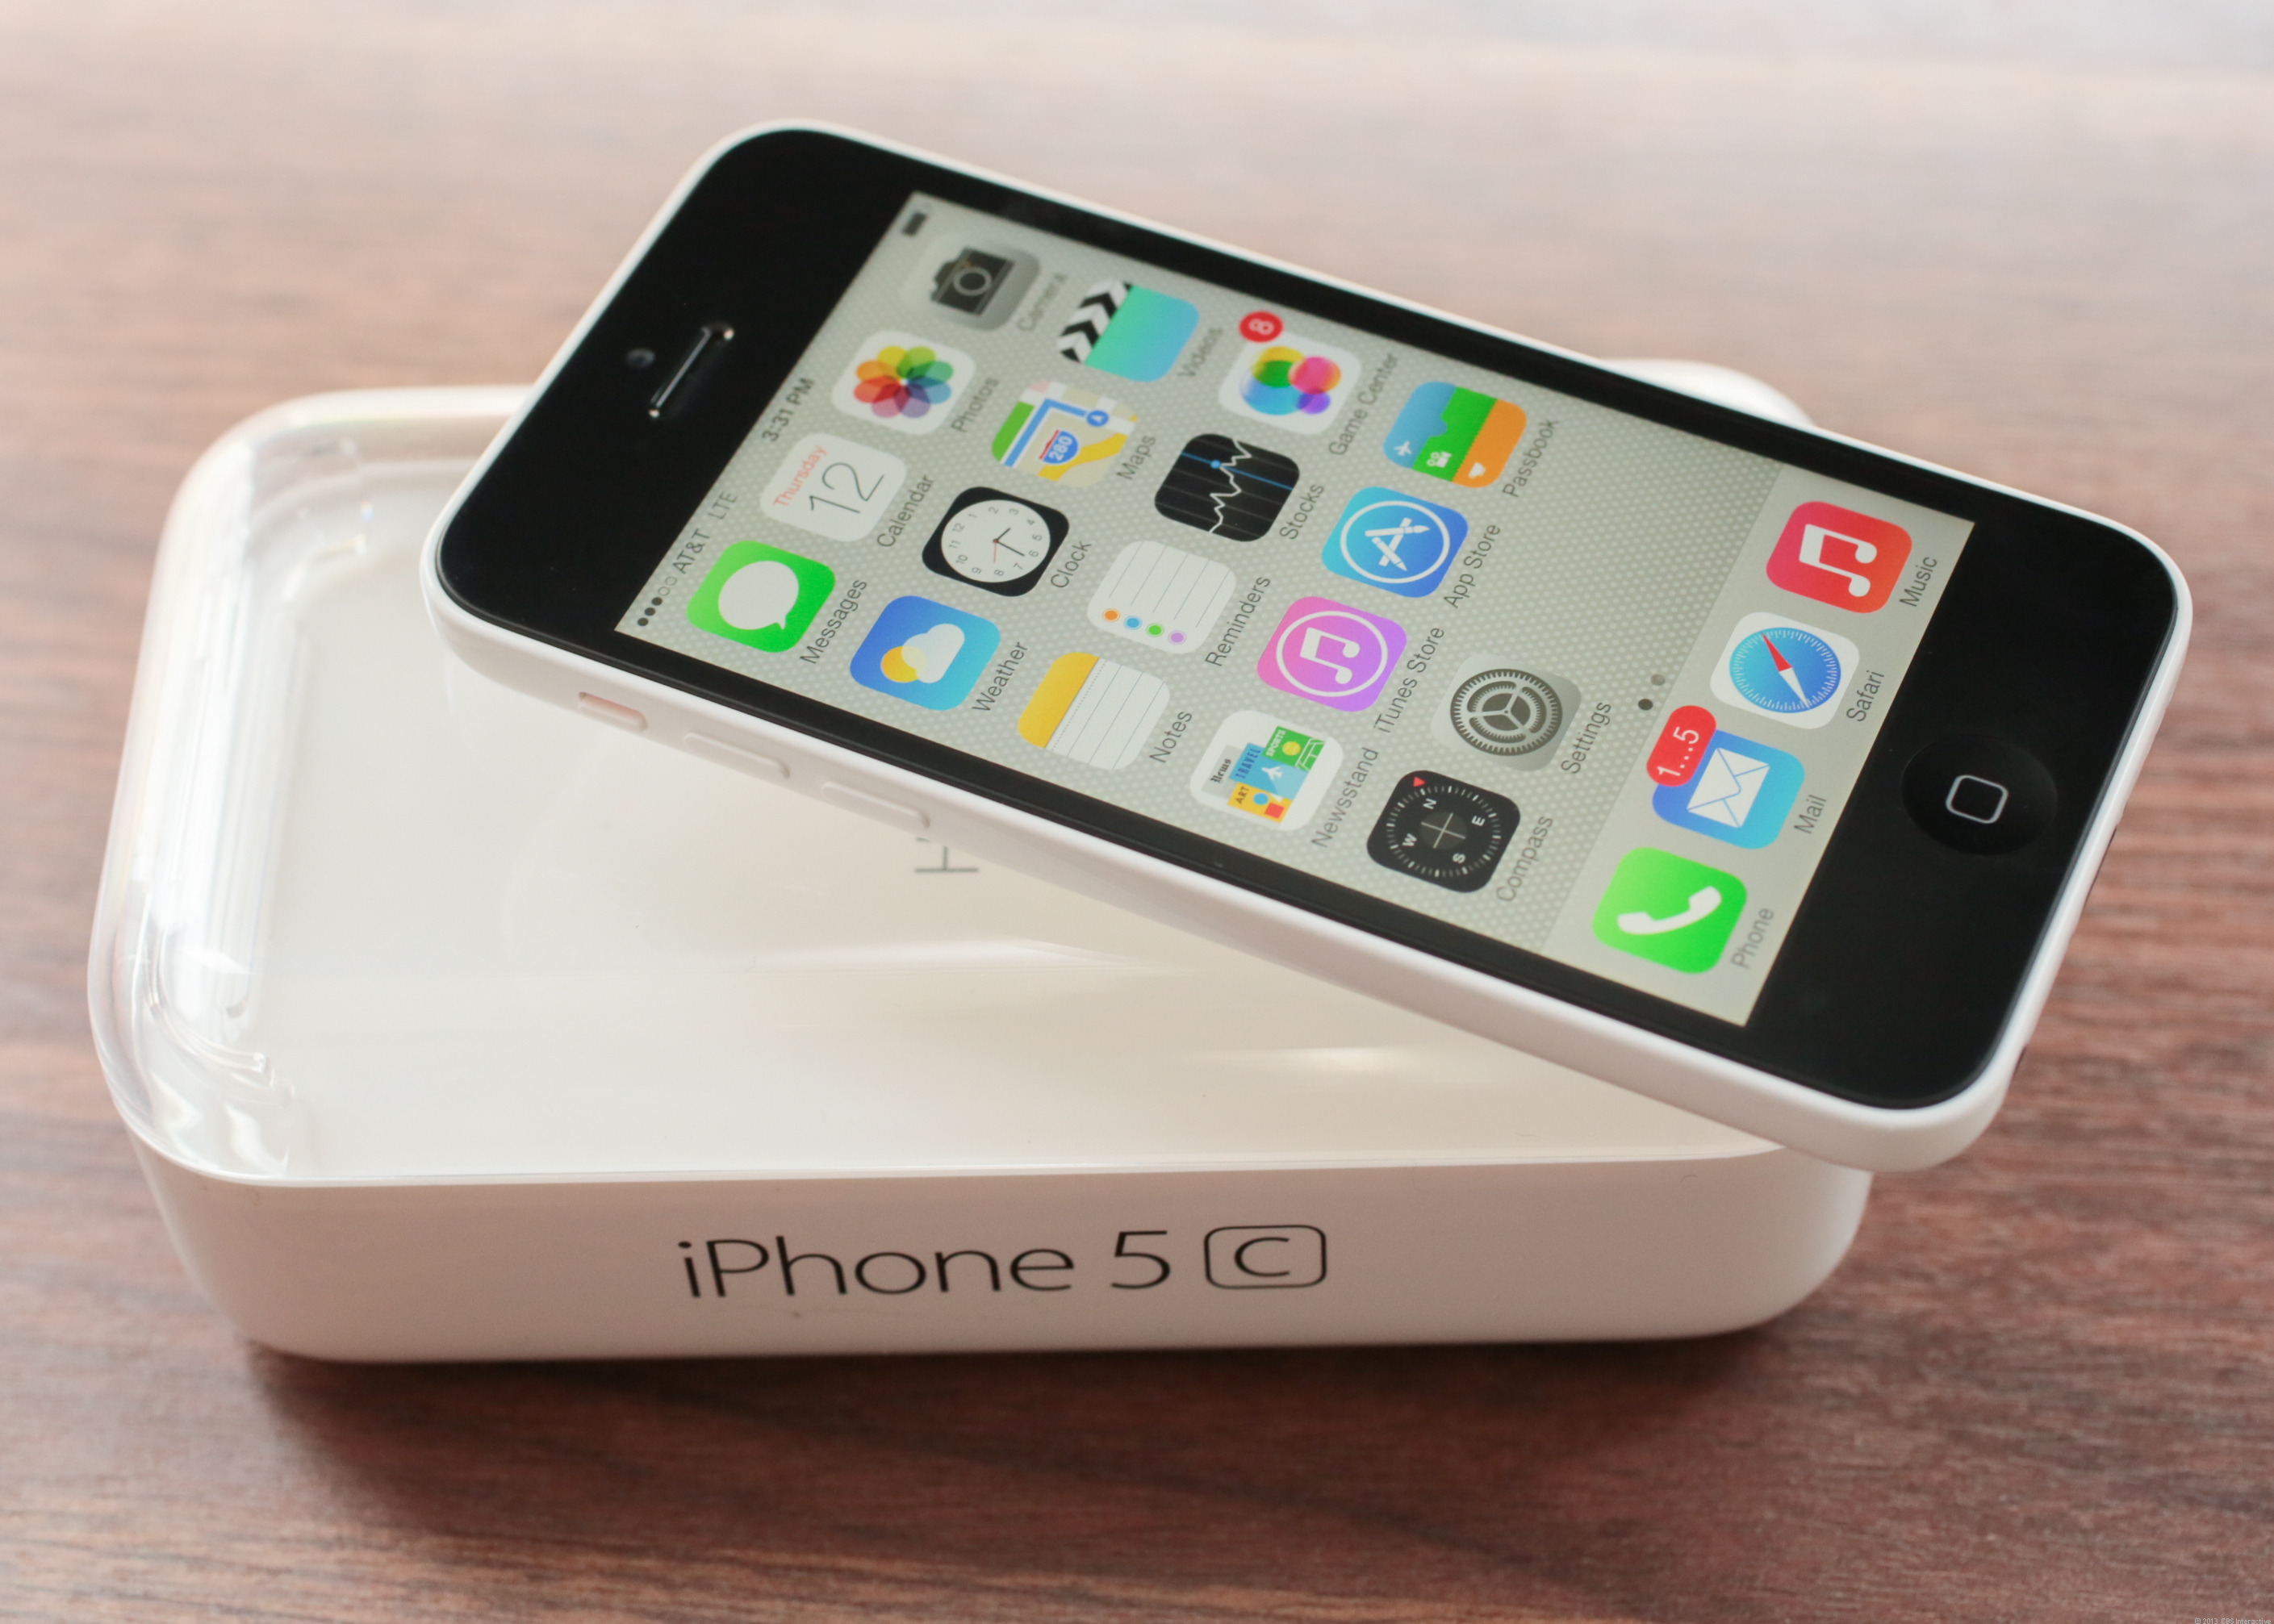 The budget-friendly iPhone 5C